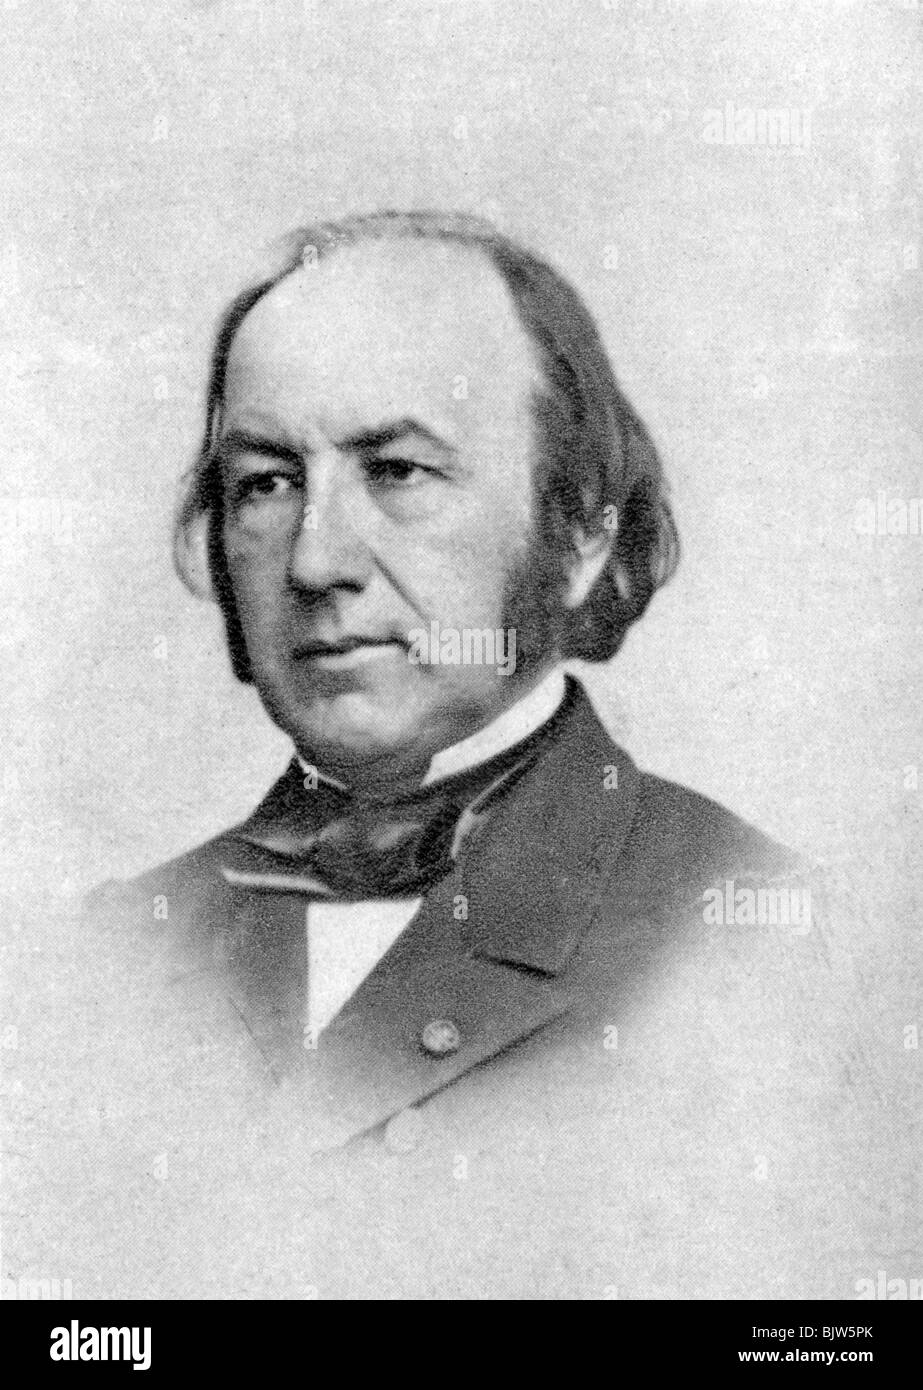 Claude Bernard, French physiologist, 1876. - Stock Image